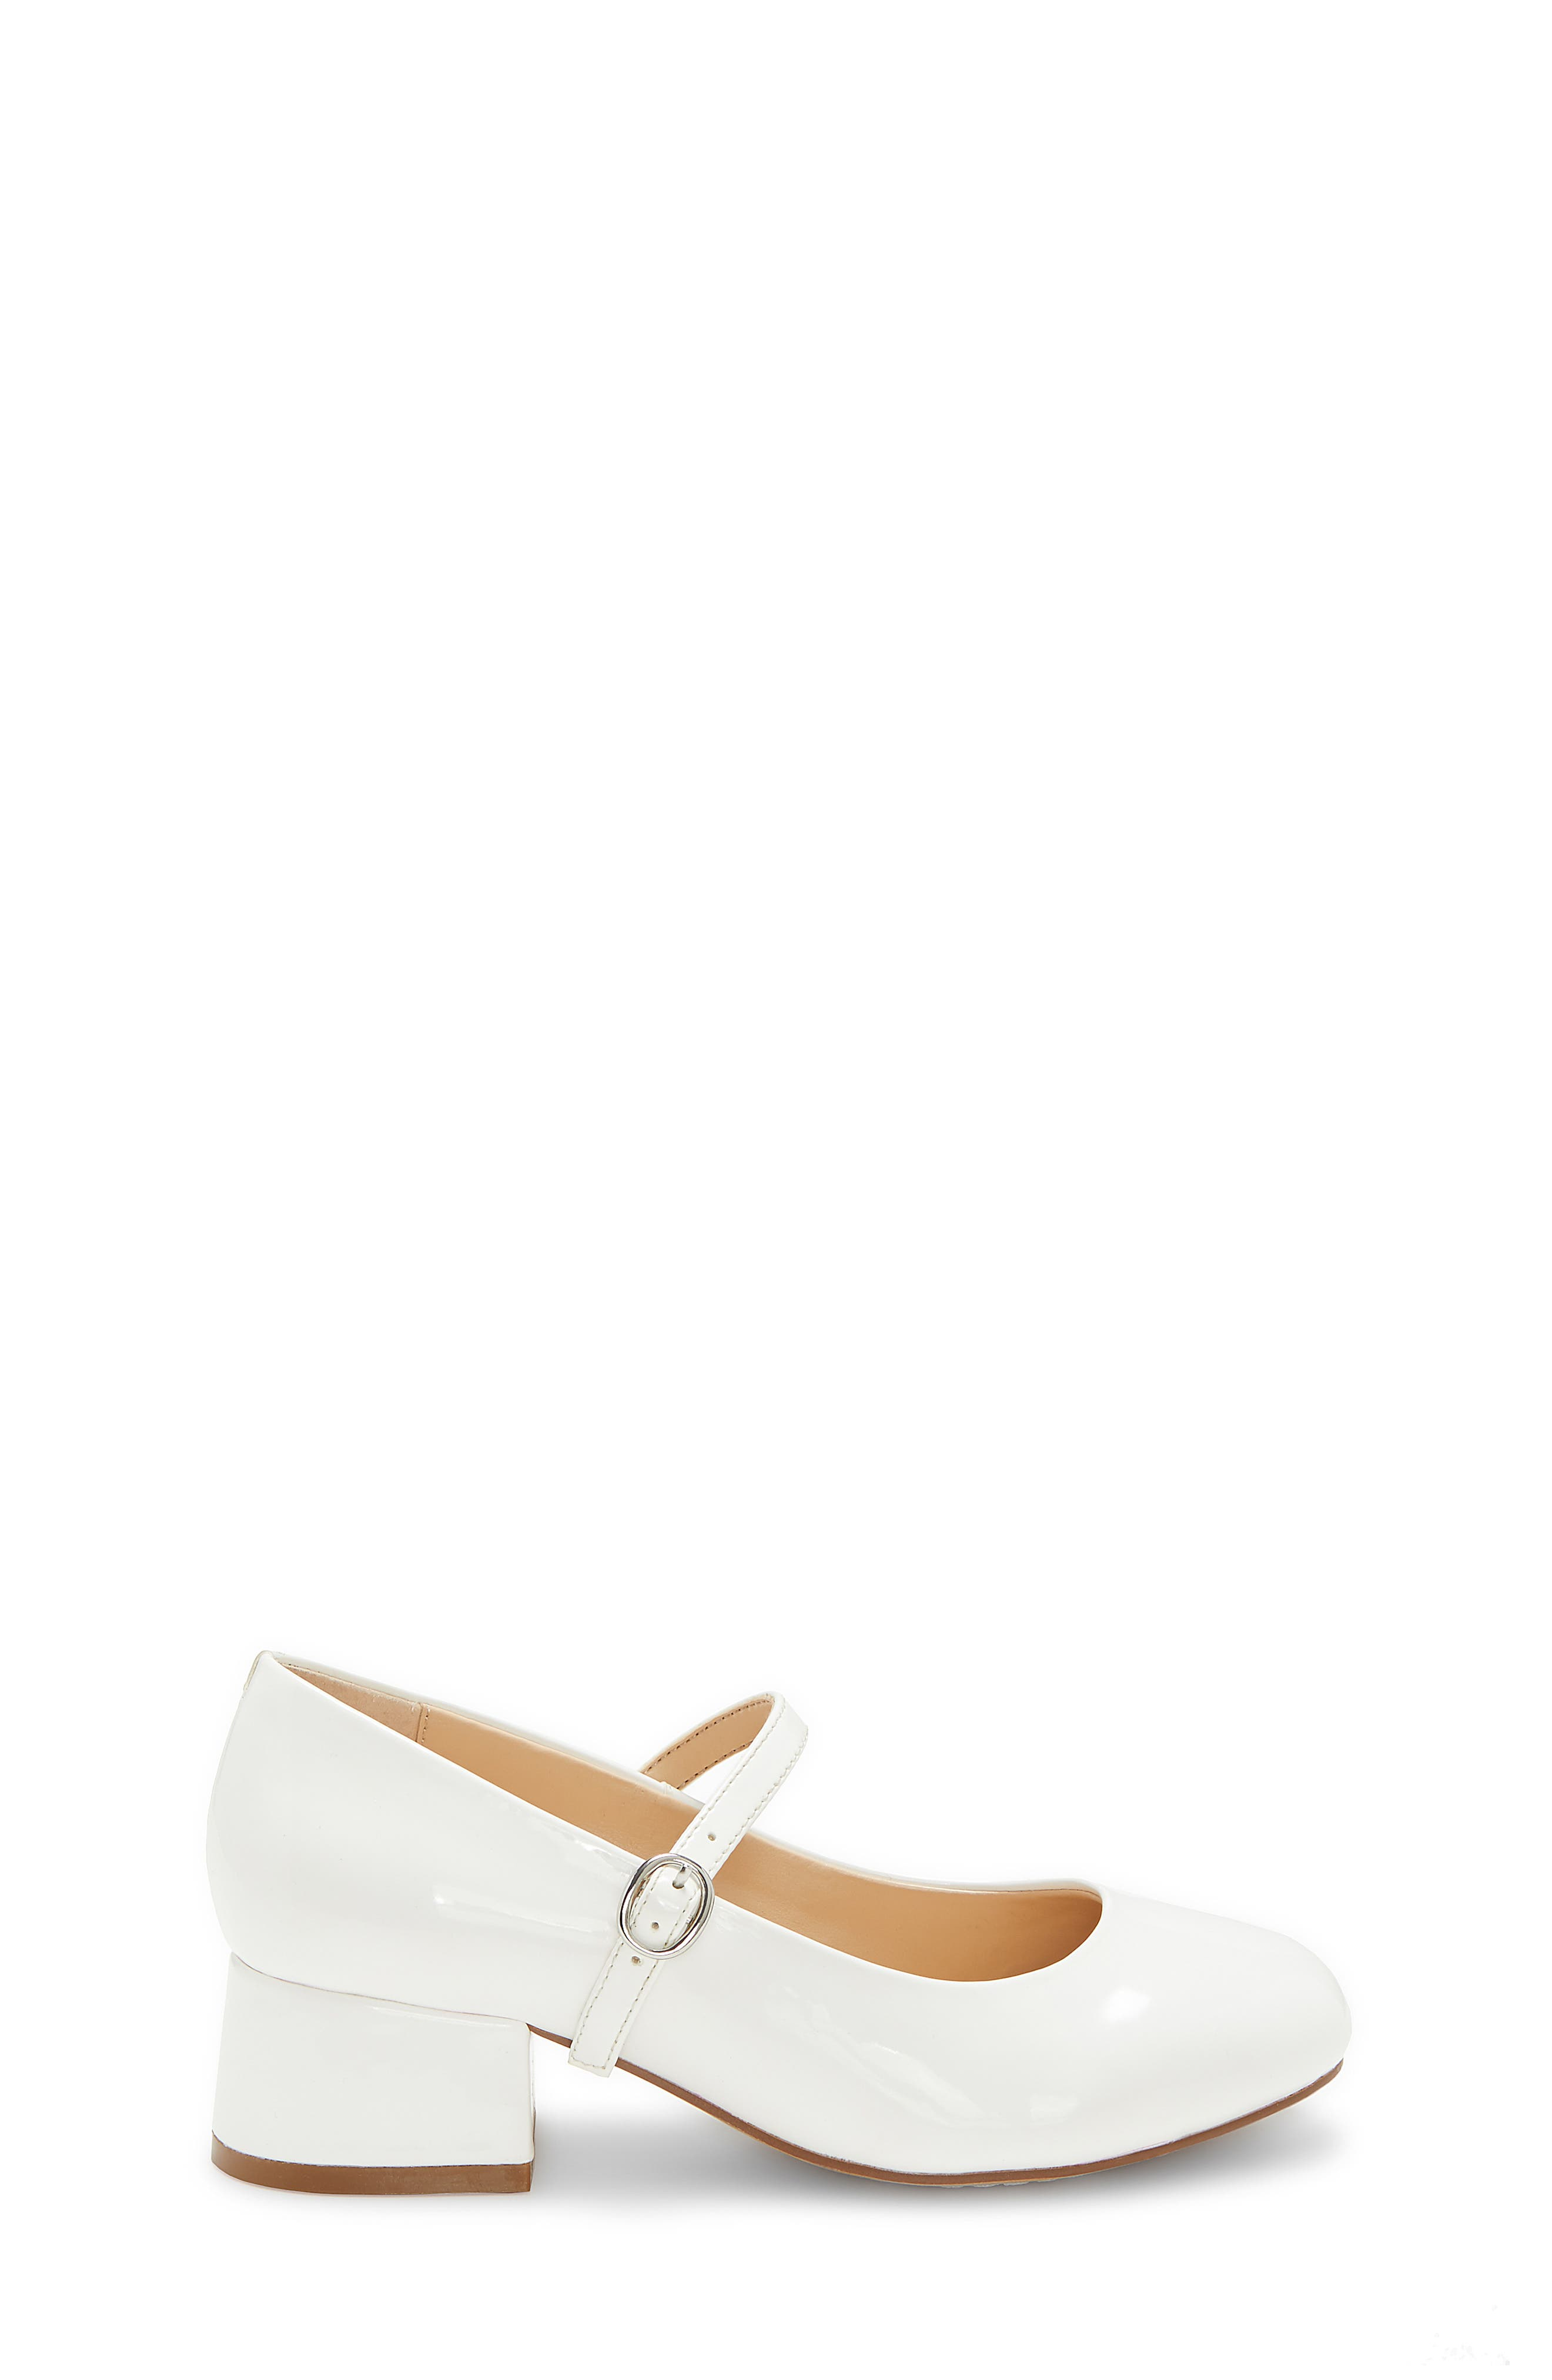 VINCE CAMUTO,                             Brenna Mary Jane Pump,                             Alternate thumbnail 3, color,                             WHITE